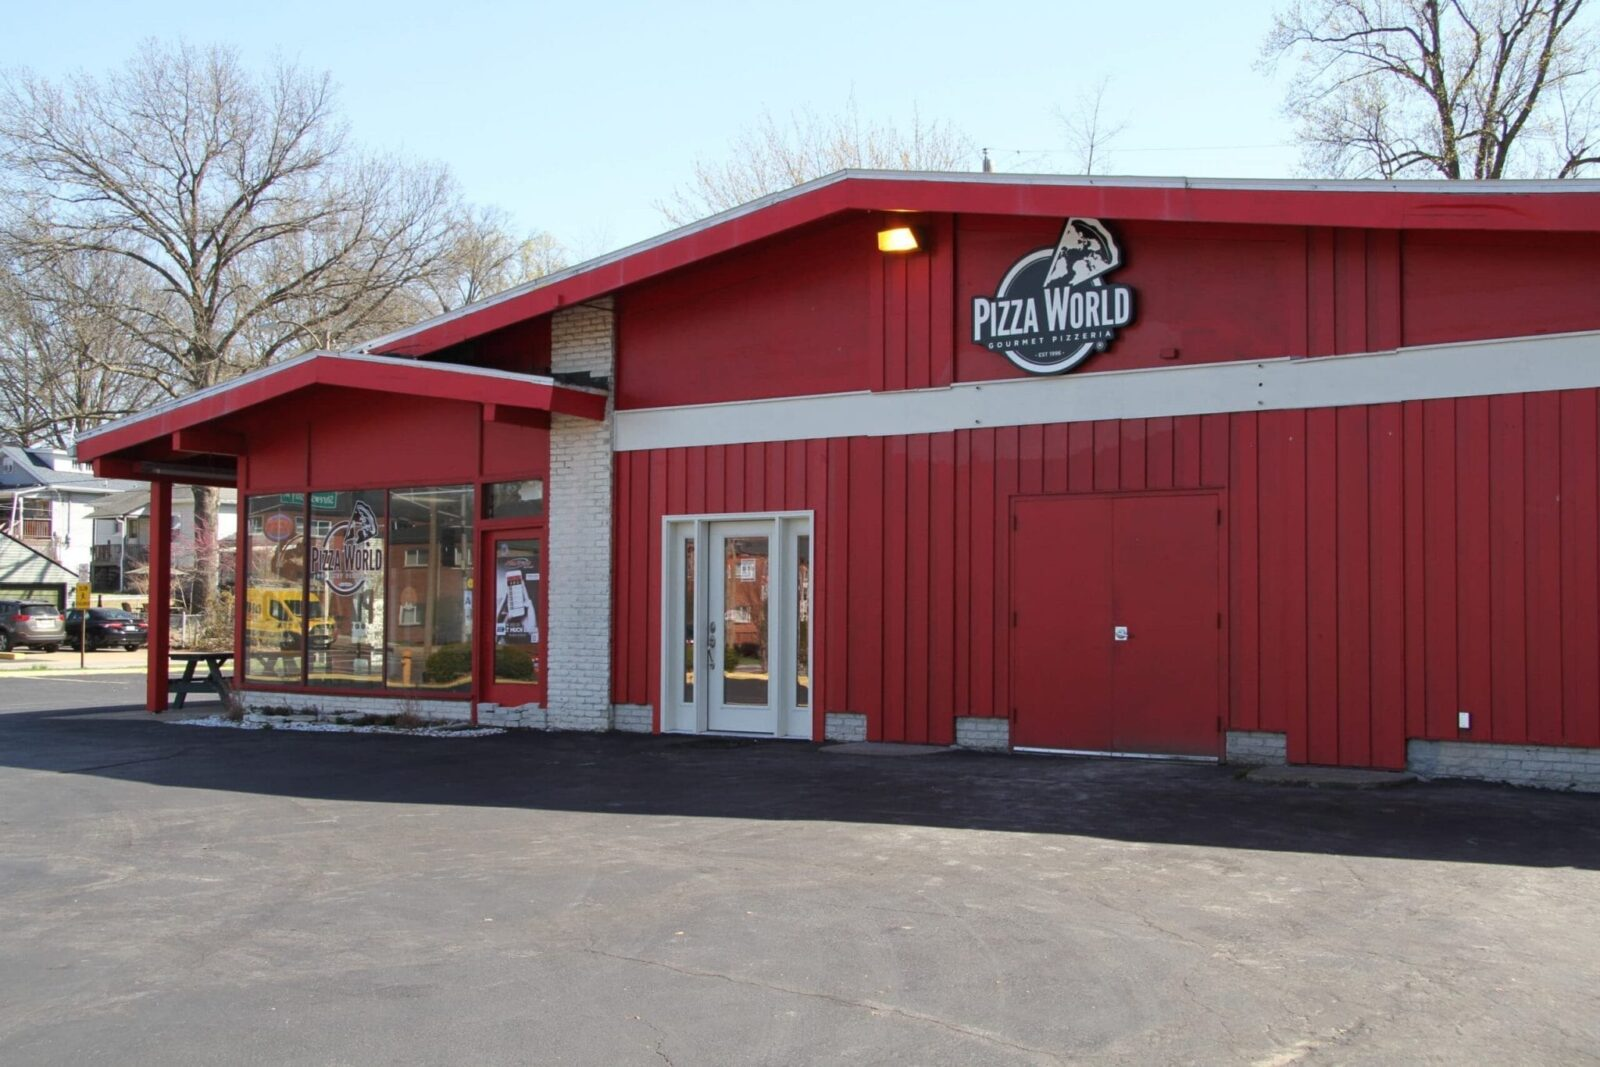 Pizza World in Shrewsbury is highly rated by customers and hiring